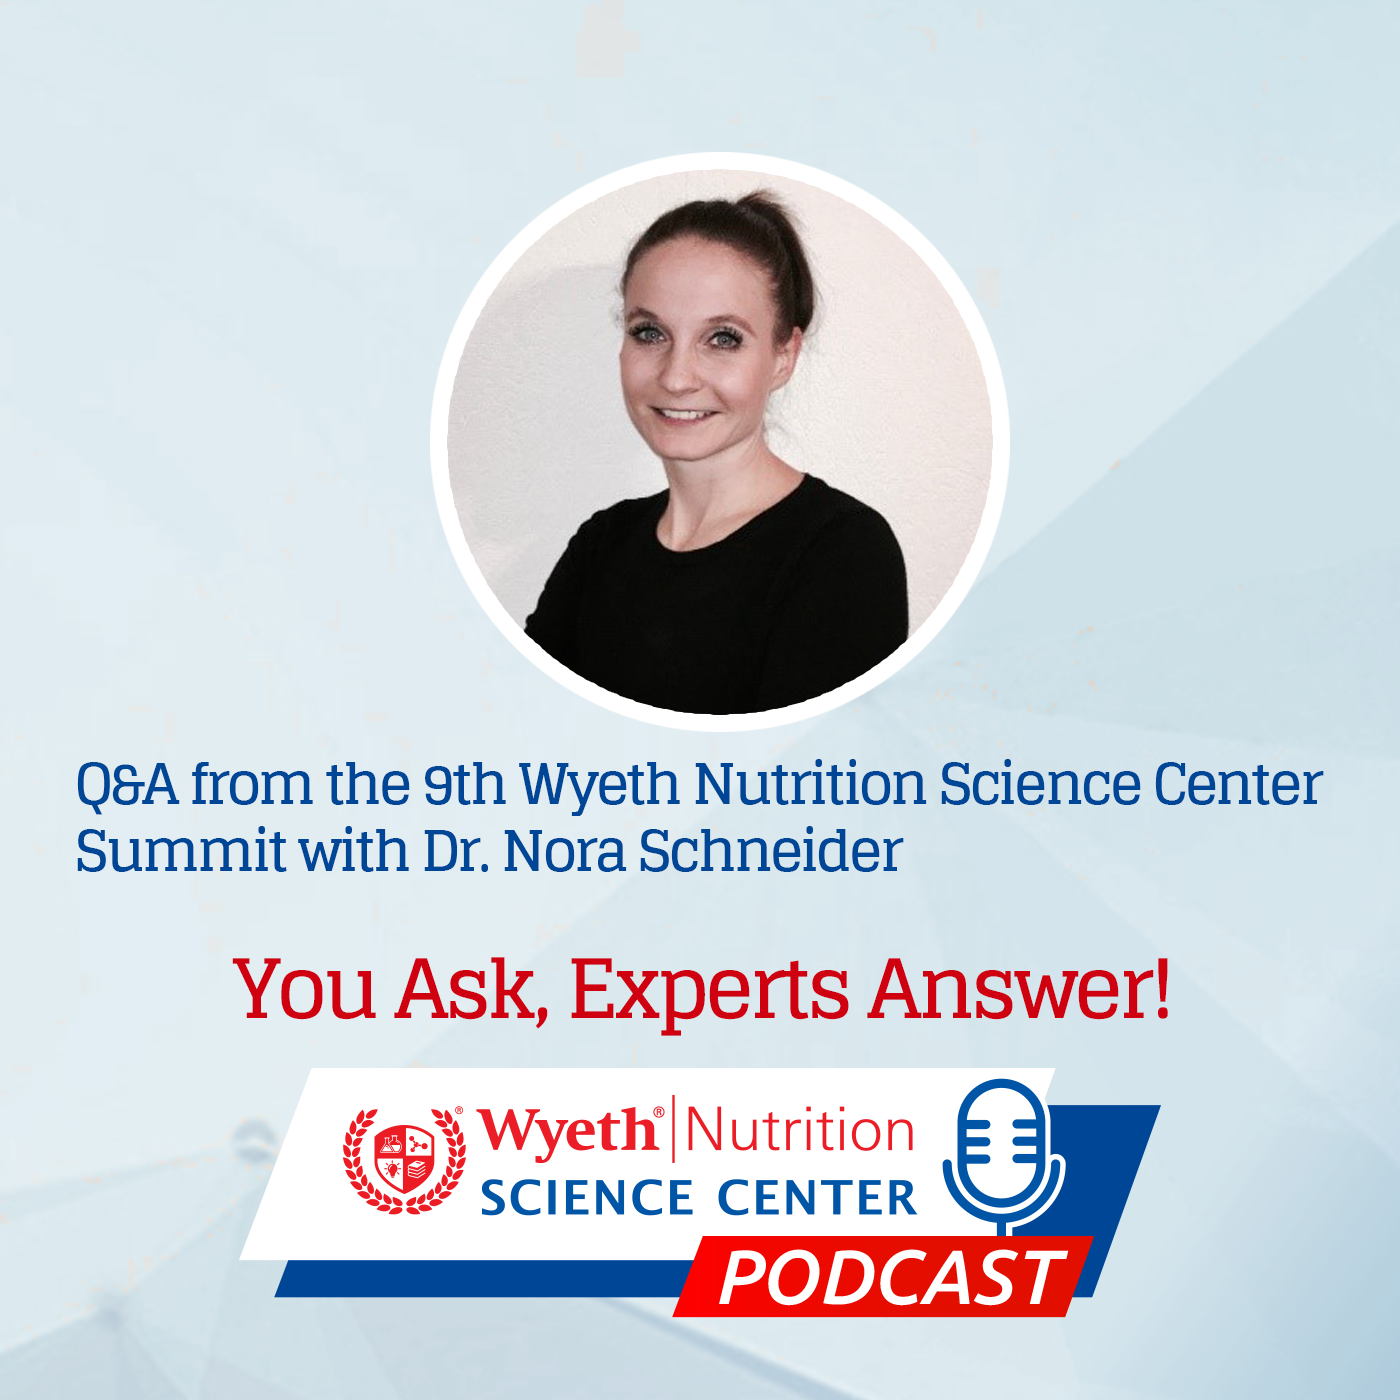 Q&A podcast from the 9th Wyeth Nutrition Science Center Summit with Dr. Nora Schneider